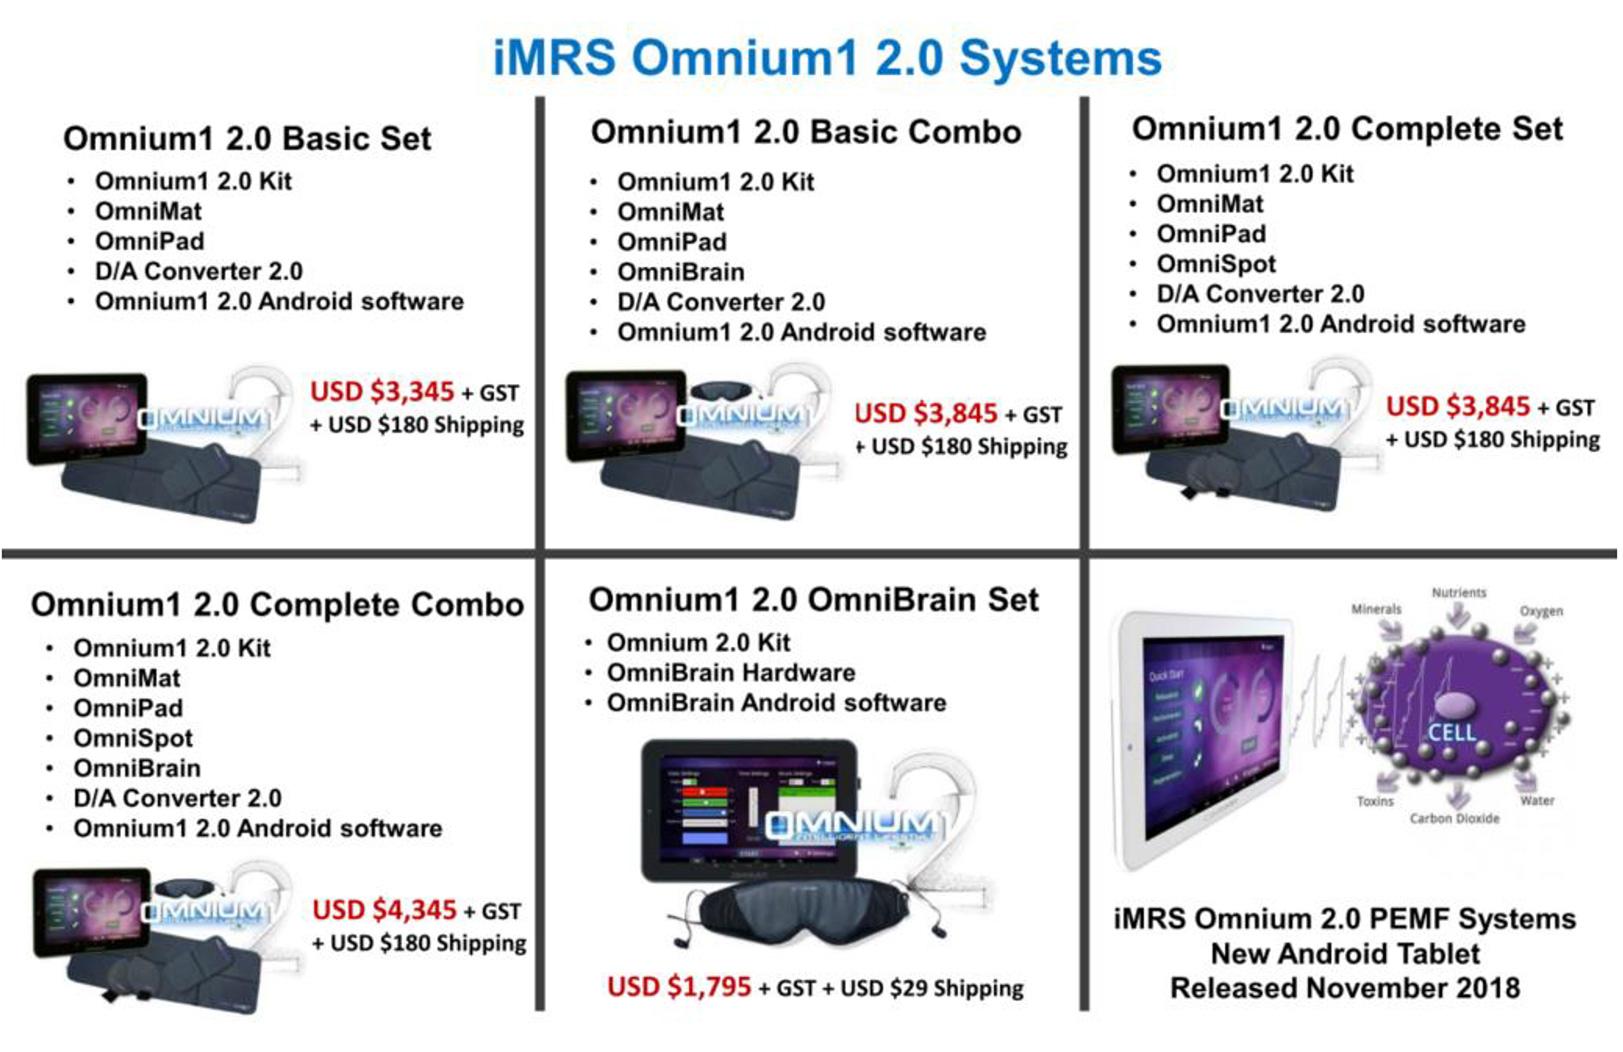 imrs_omnium_systems_chart